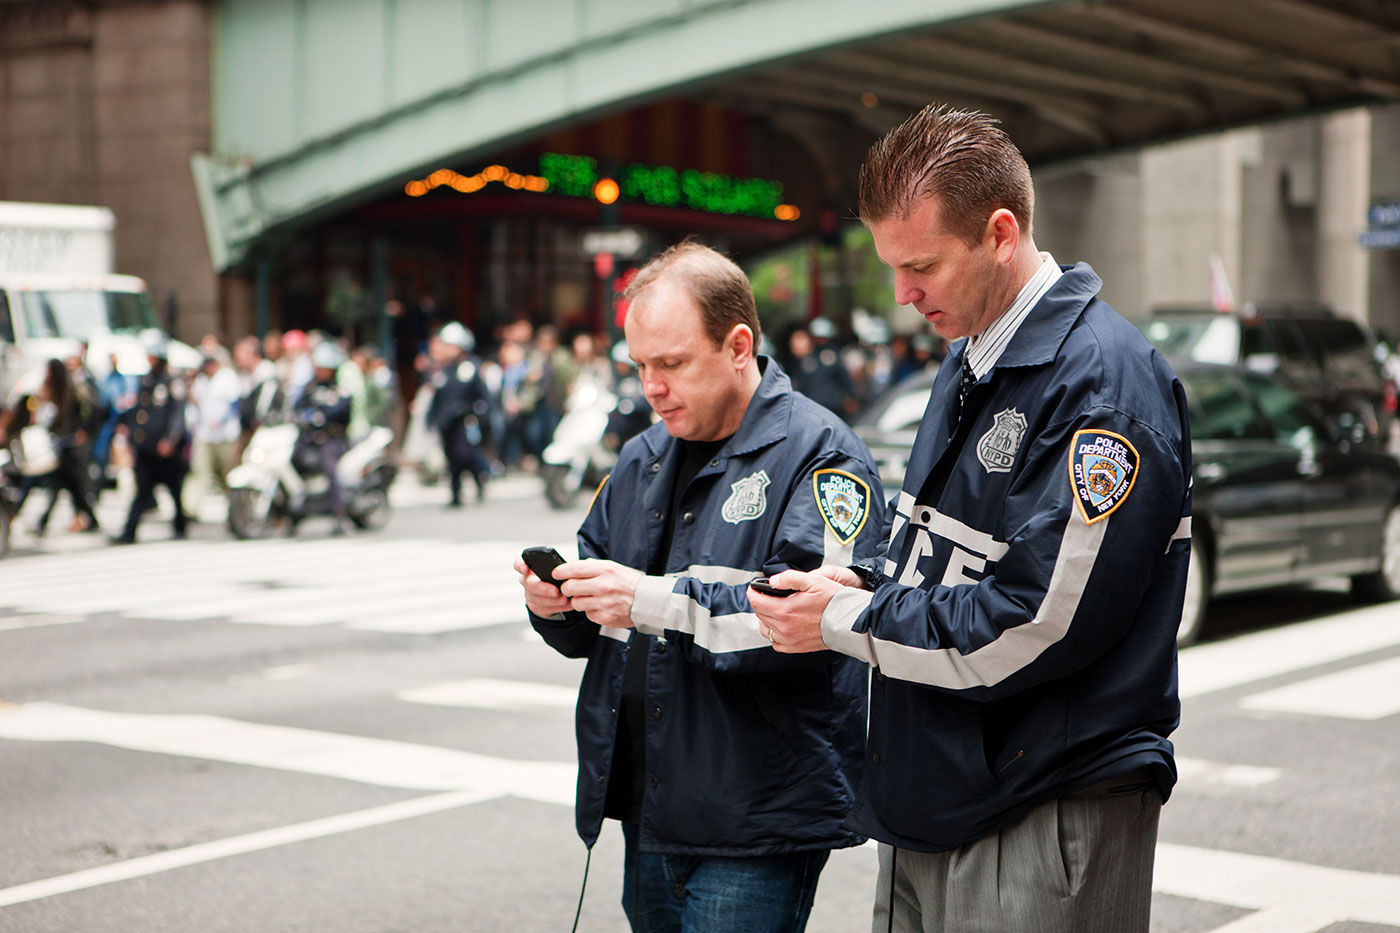 Two policemen on 42nd street using their mobile phone.